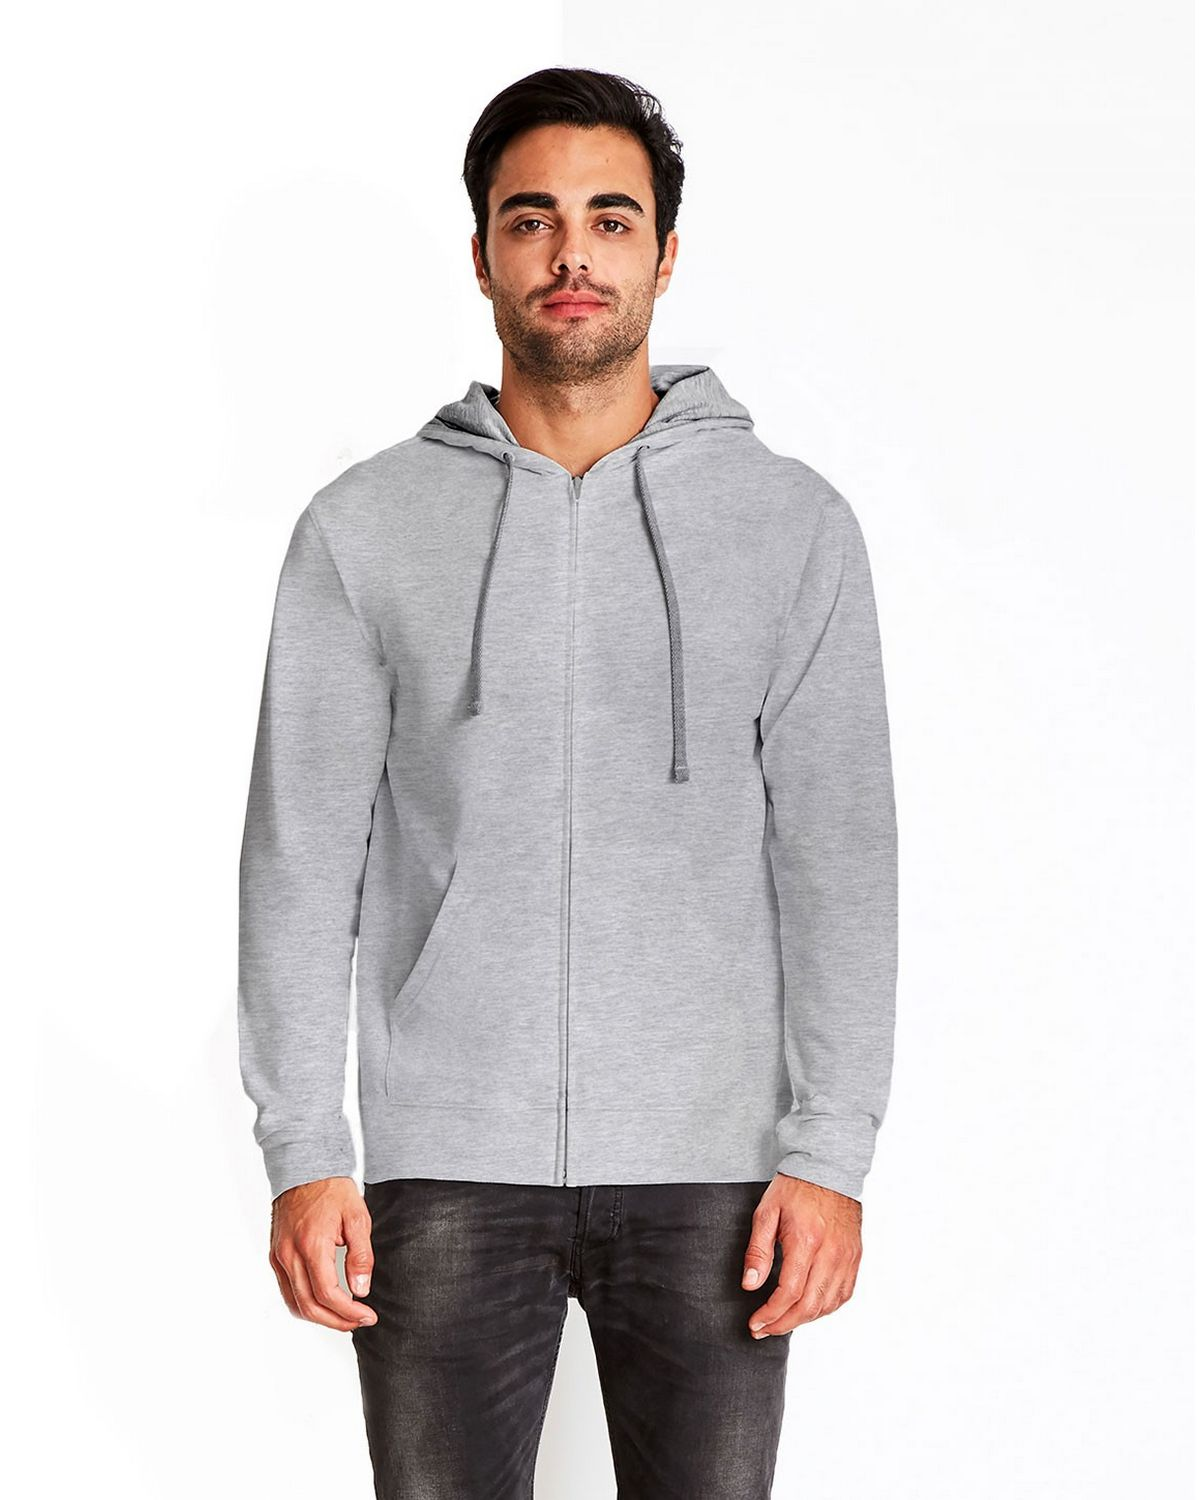 Next Level 9601 French Terry Zip Hoody - Heather Grey/Heather Grey - L 9601